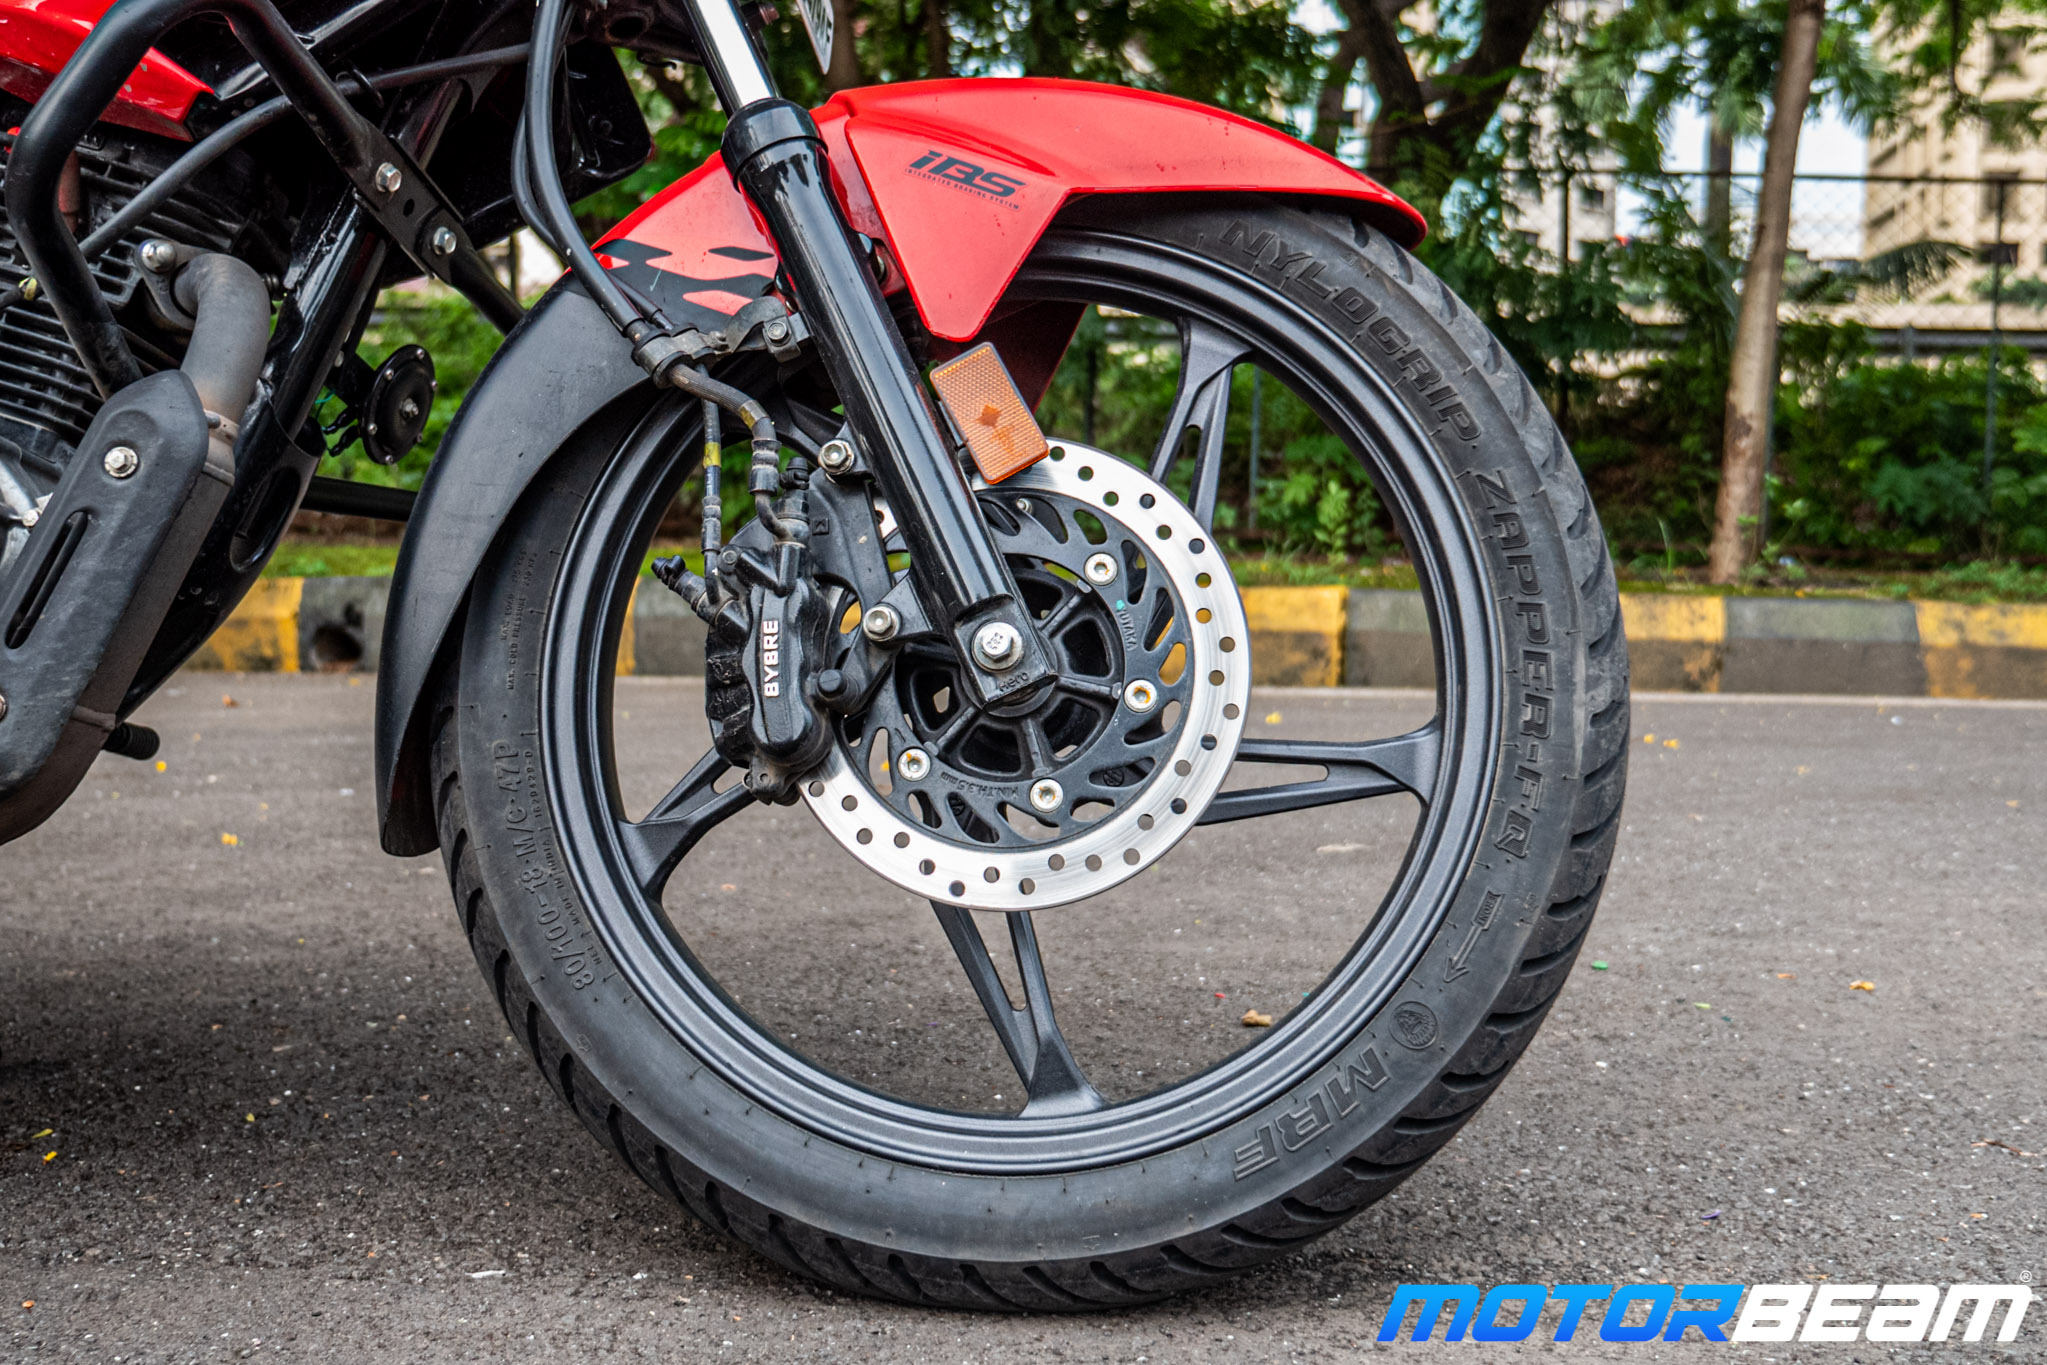 2020 Hero Glamour 125 Review 23